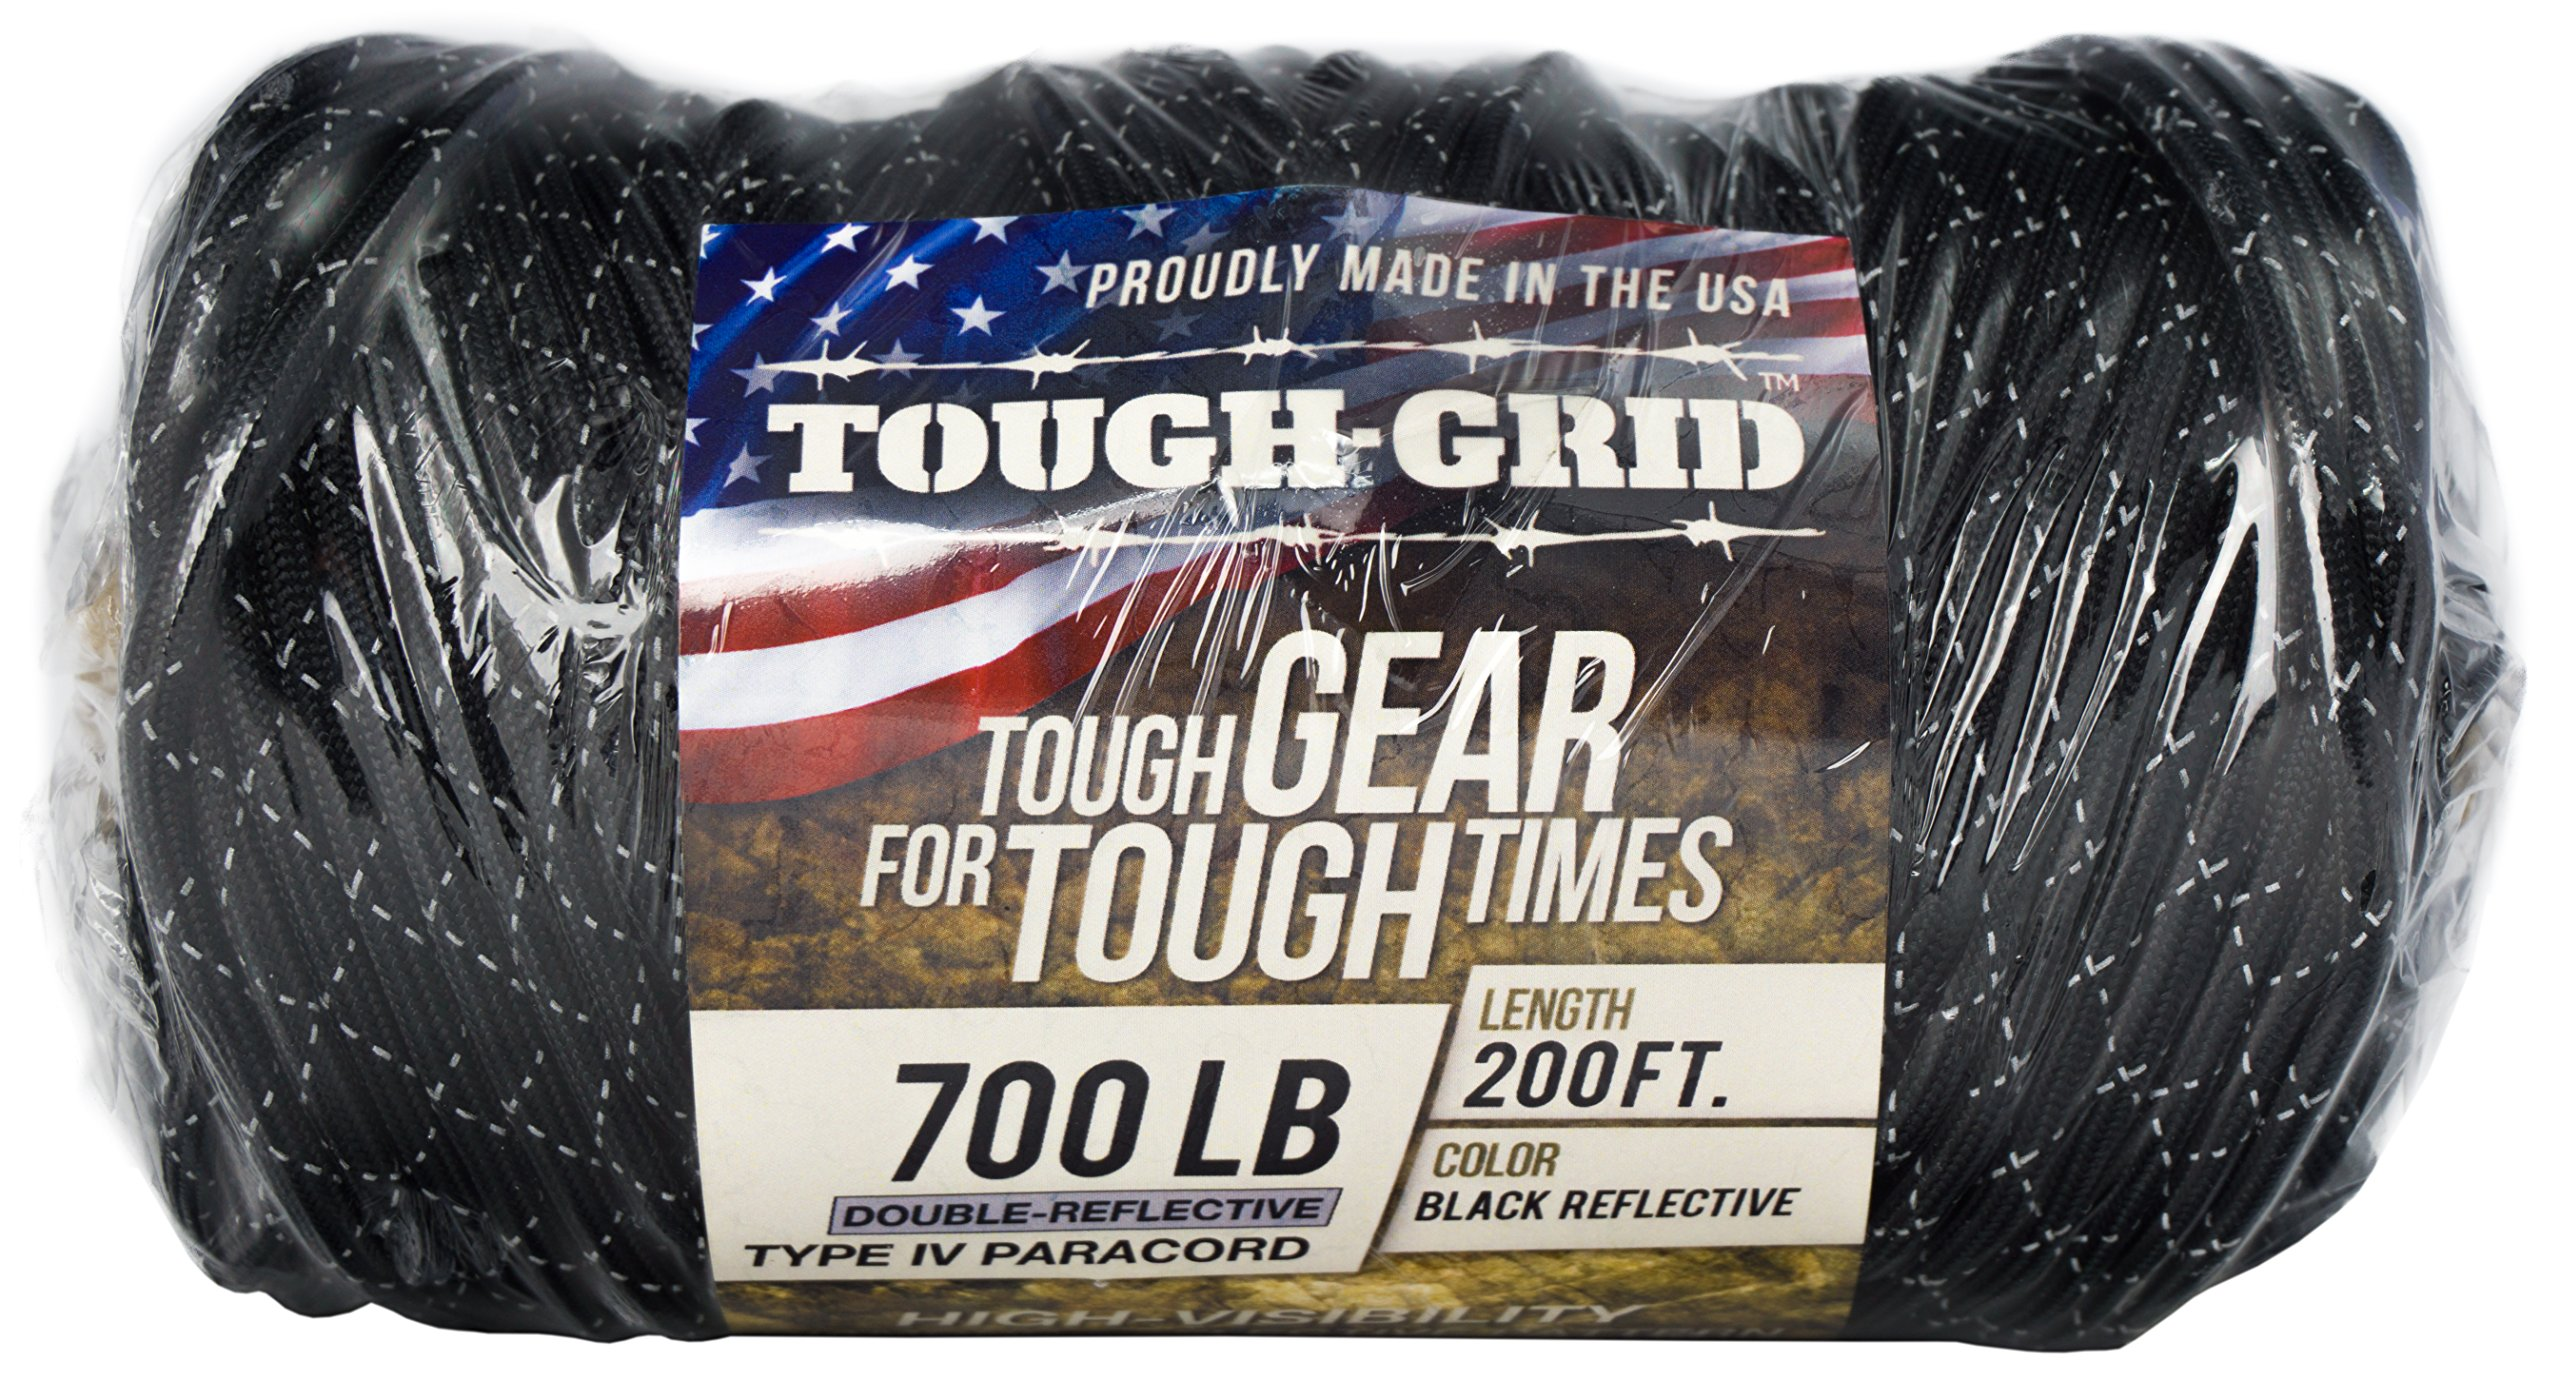 TOUGH-GRID New 700lb Double-Reflective Paracord/Parachute Cord - 2 Vibrant Retro-Reflective Strands for The Ultimate High-Visibility Cord - 100% Nylon - Made in USA. - 100Ft. Black Reflective by TOUGH-GRID (Image #5)